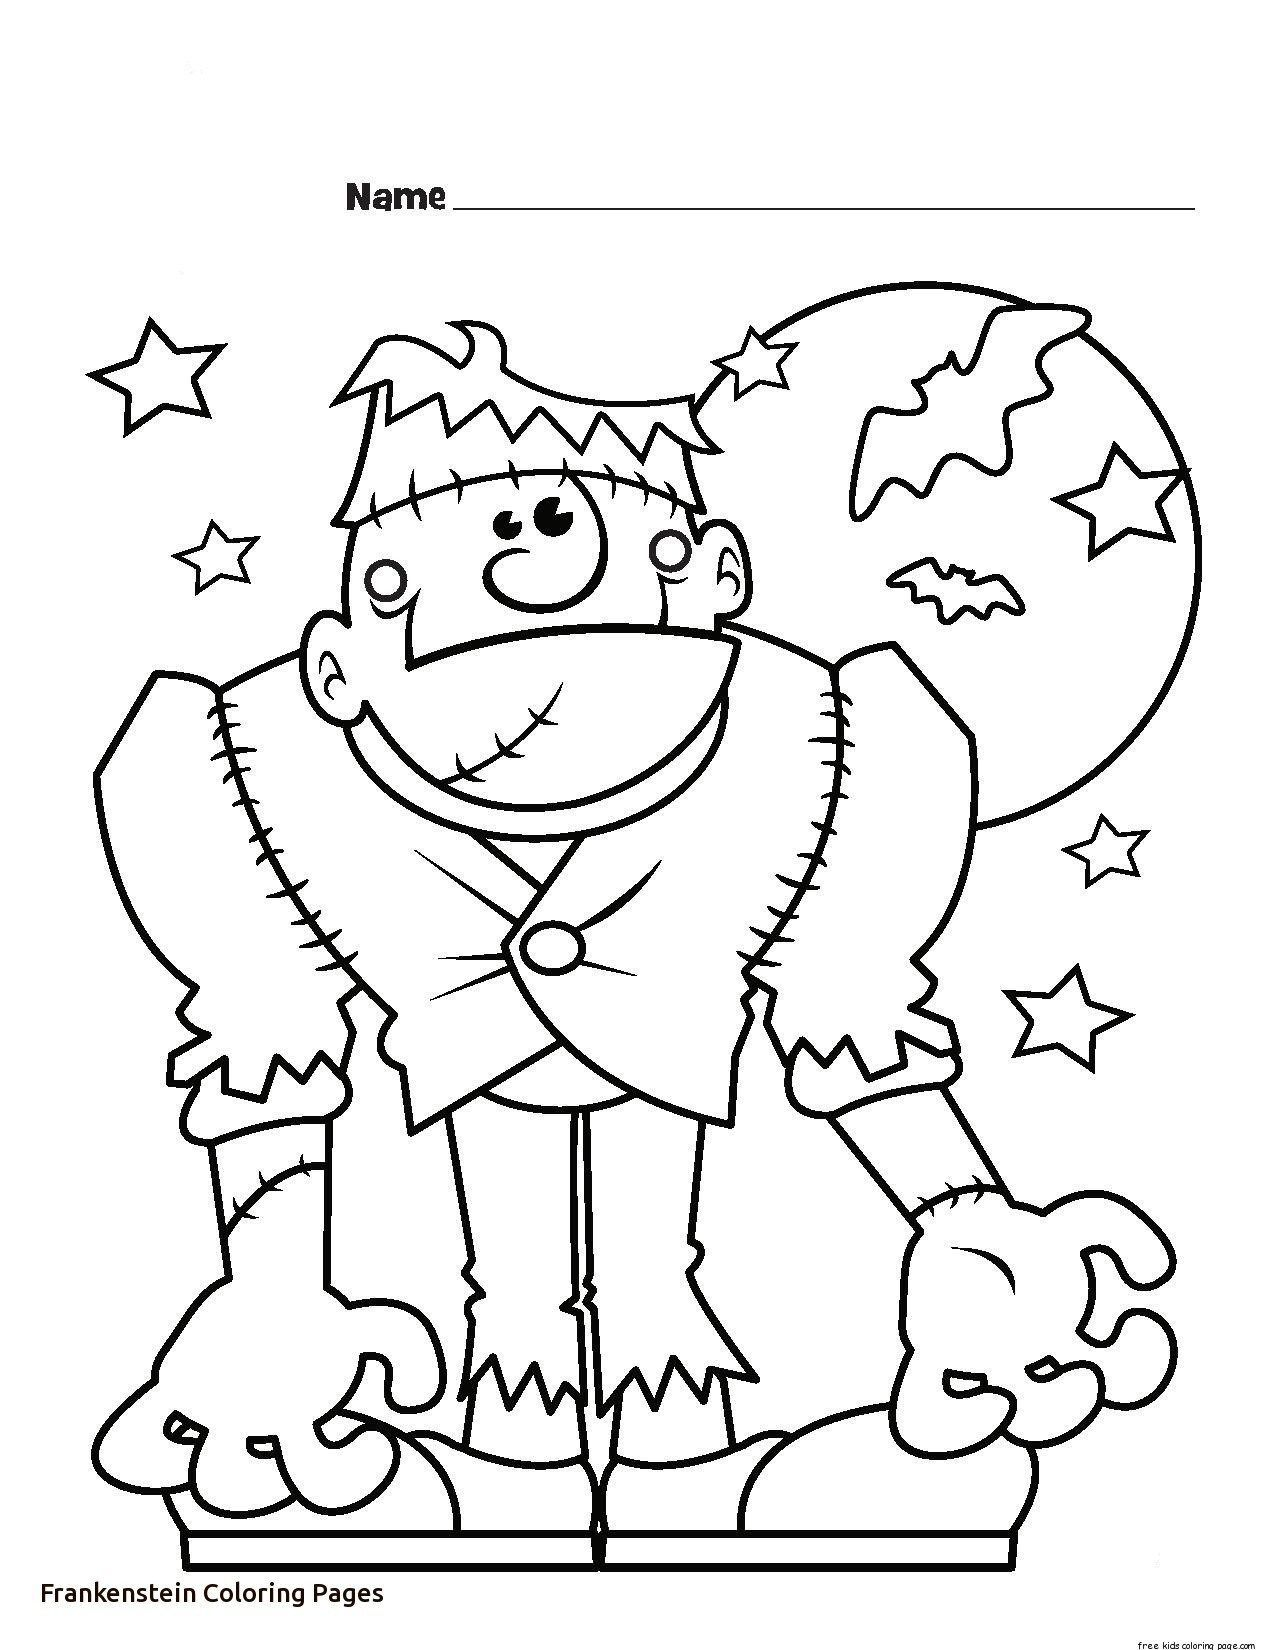 24 Awesome Picture Of Frankenstein Coloring Pages Davemelillo Com Halloweencoloringpage Halloween Coloring Sheets Monster Coloring Pages Halloween Coloring